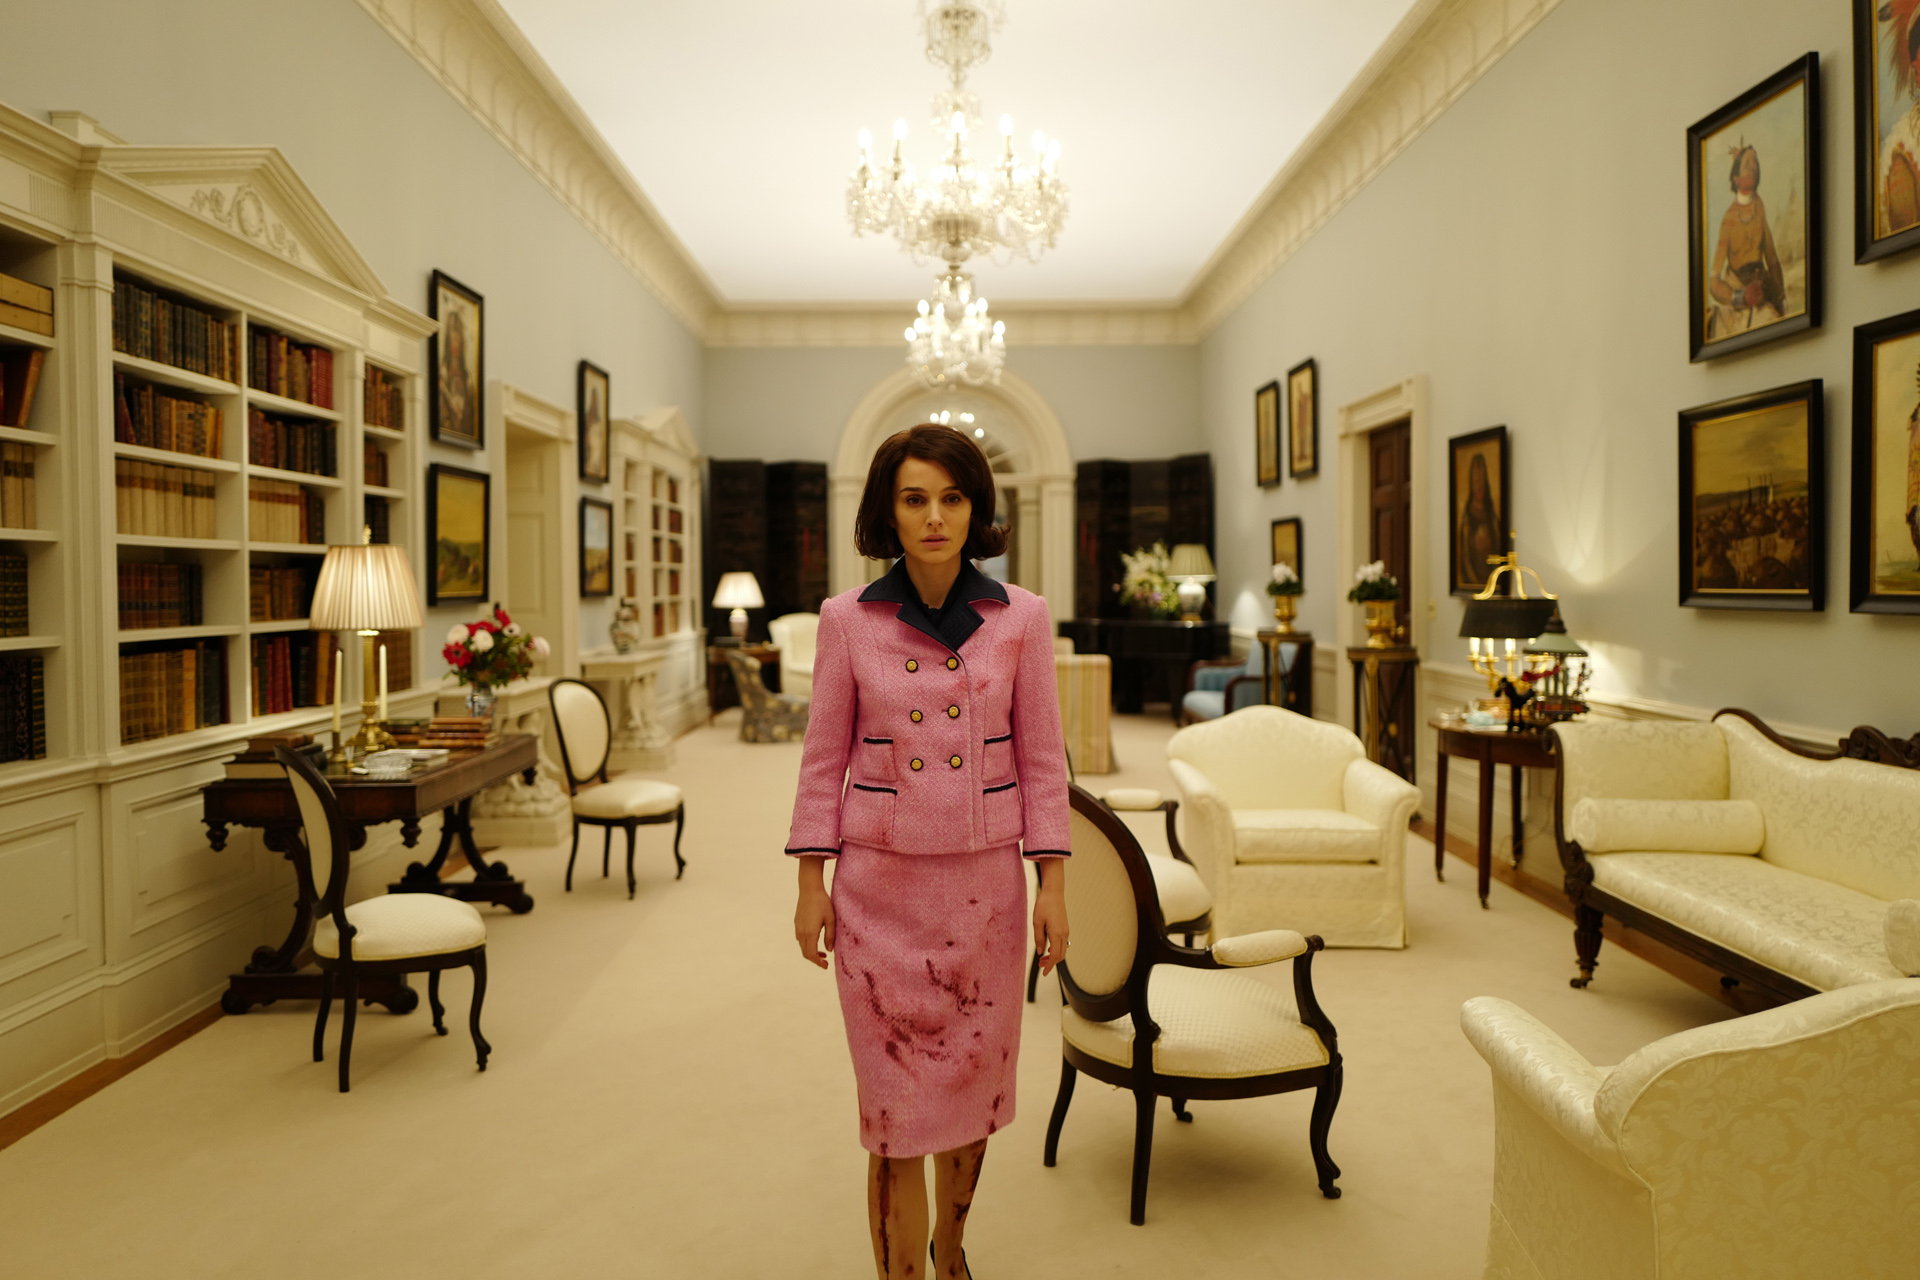 Natalie Portman stands in a White House set with a luminous ceiling